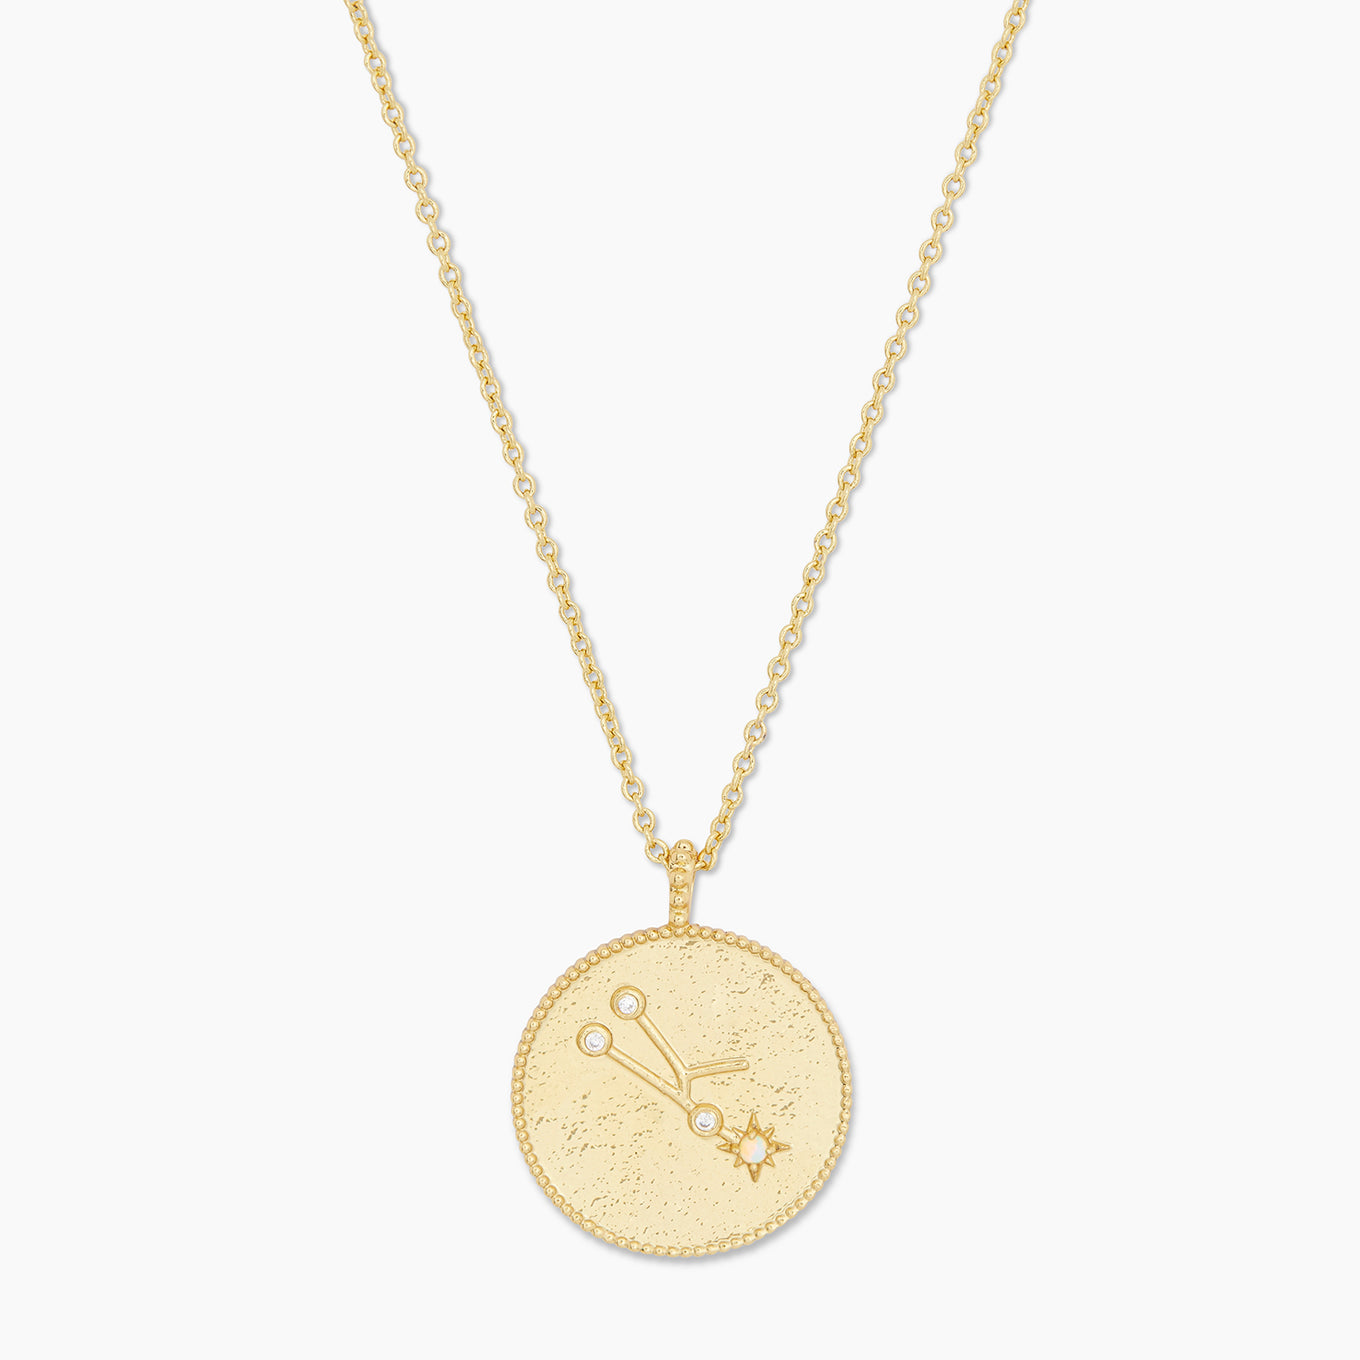 Astrology Coin Necklace (Taurus)